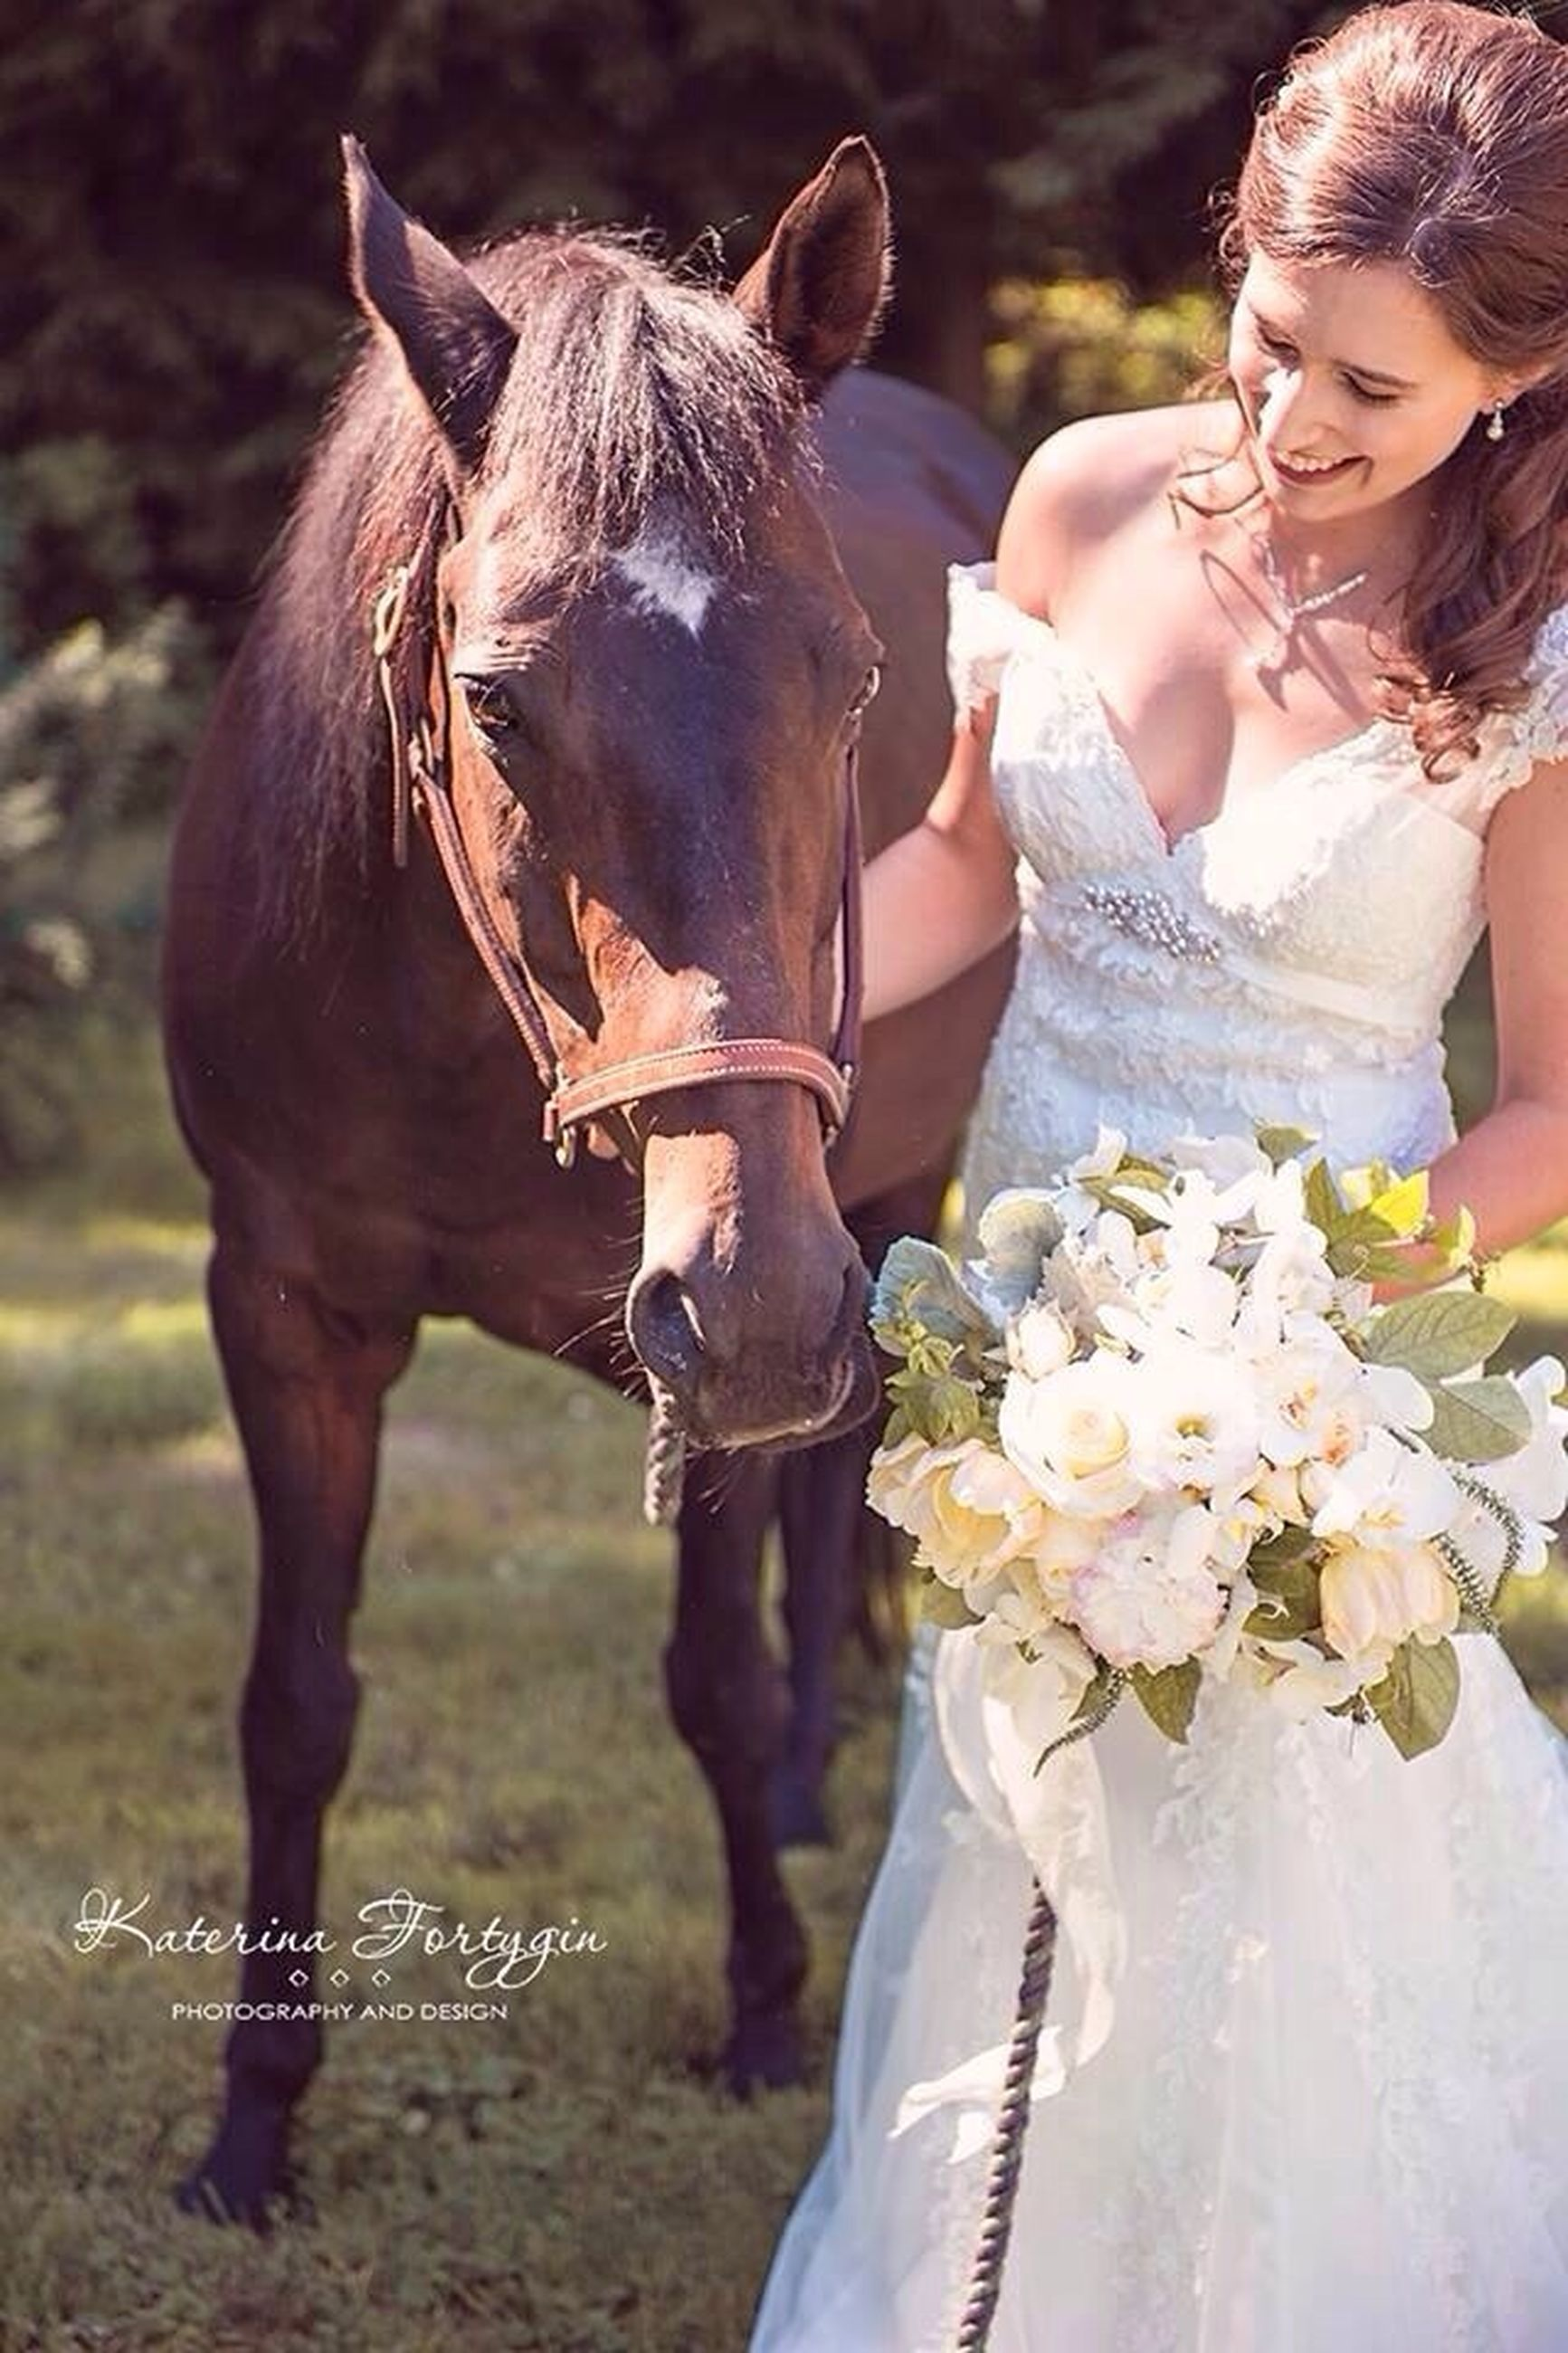 lifestyles, holding, standing, casual clothing, leisure activity, animal themes, focus on foreground, person, front view, horse, young adult, working animal, young women, outdoors, flower, livestock, day, close-up